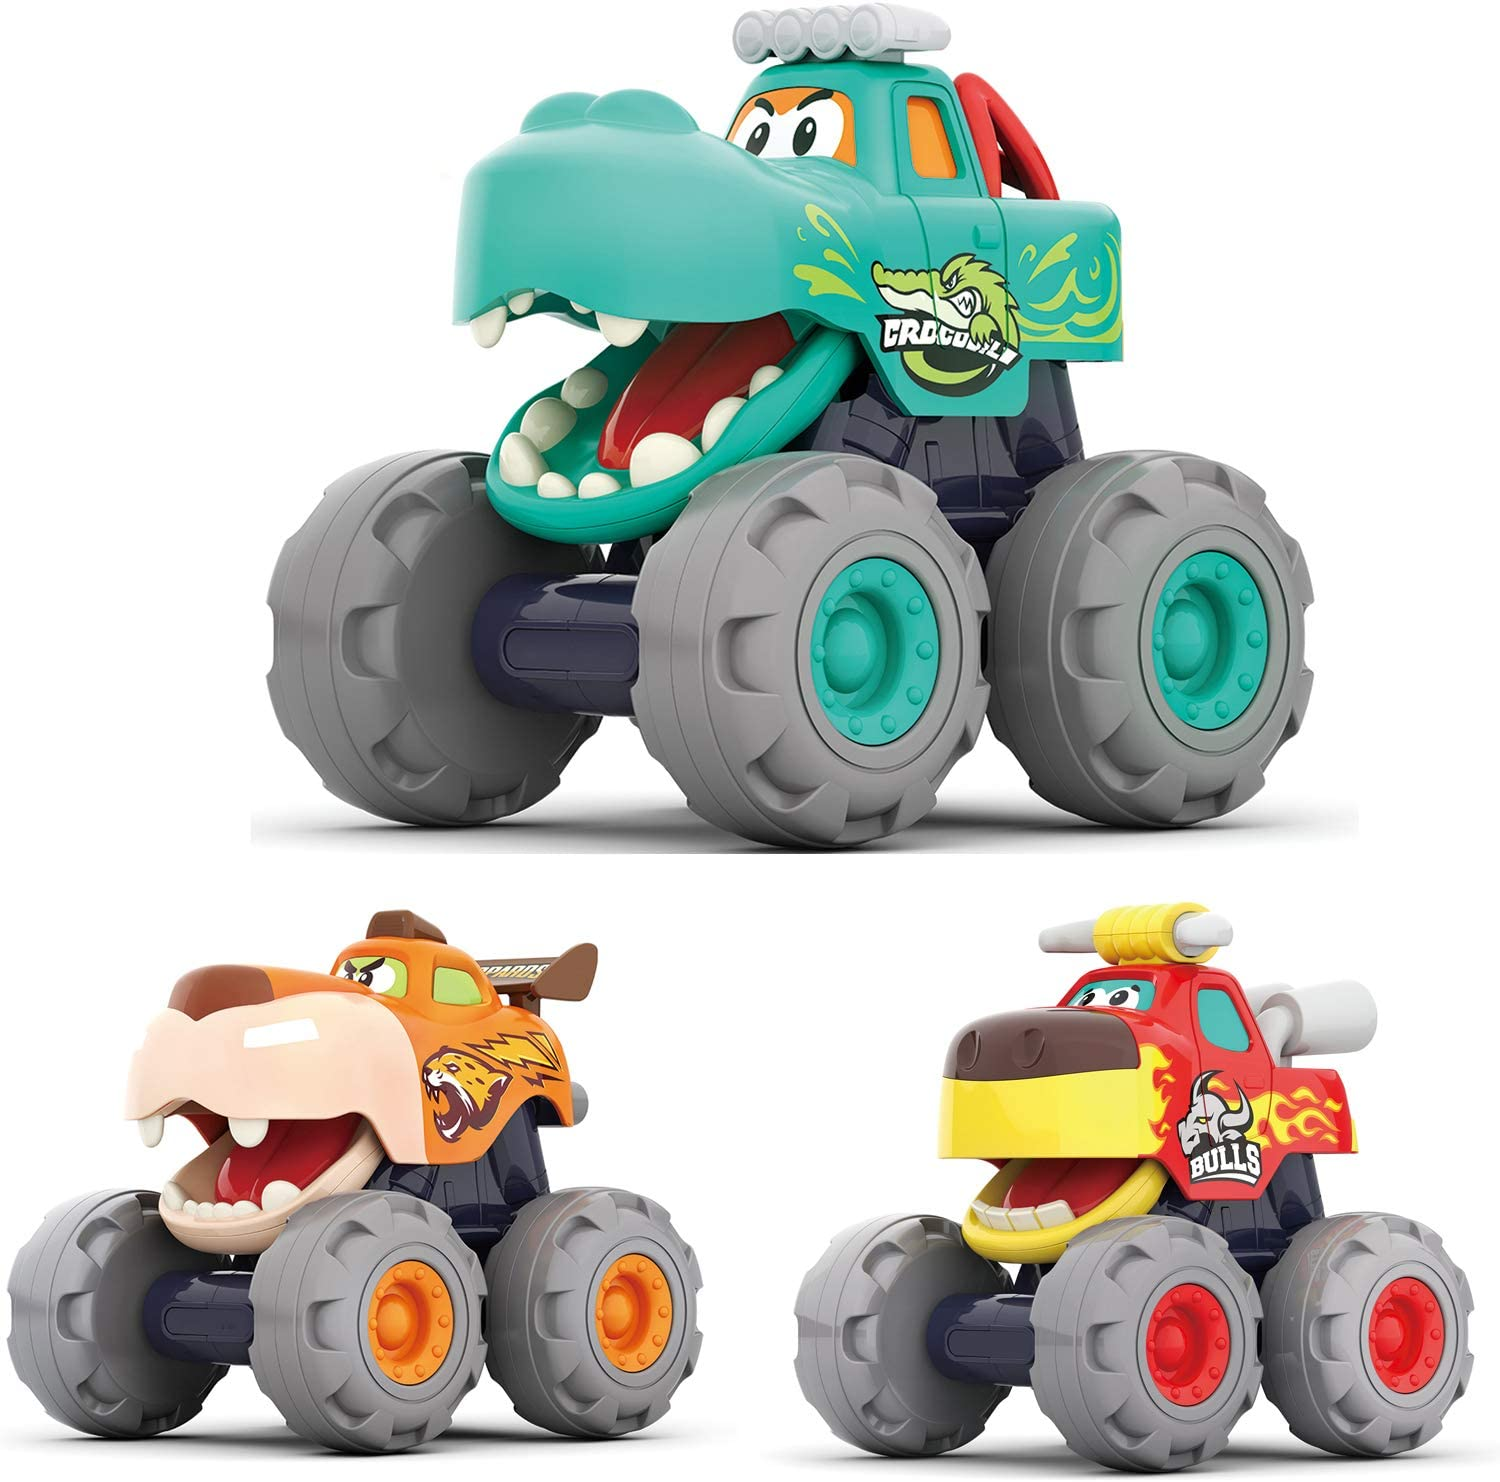 MOONTOY Toy Cars for 1 2 3 Year Old Boys, 3 Pack Friction Powered Cars Pull Back Toy Cars Set - Bull Truck, Leopard Truck, Crocodile Trucks, Push and Go Toy Cars for Toddler Boys Baby Gift.